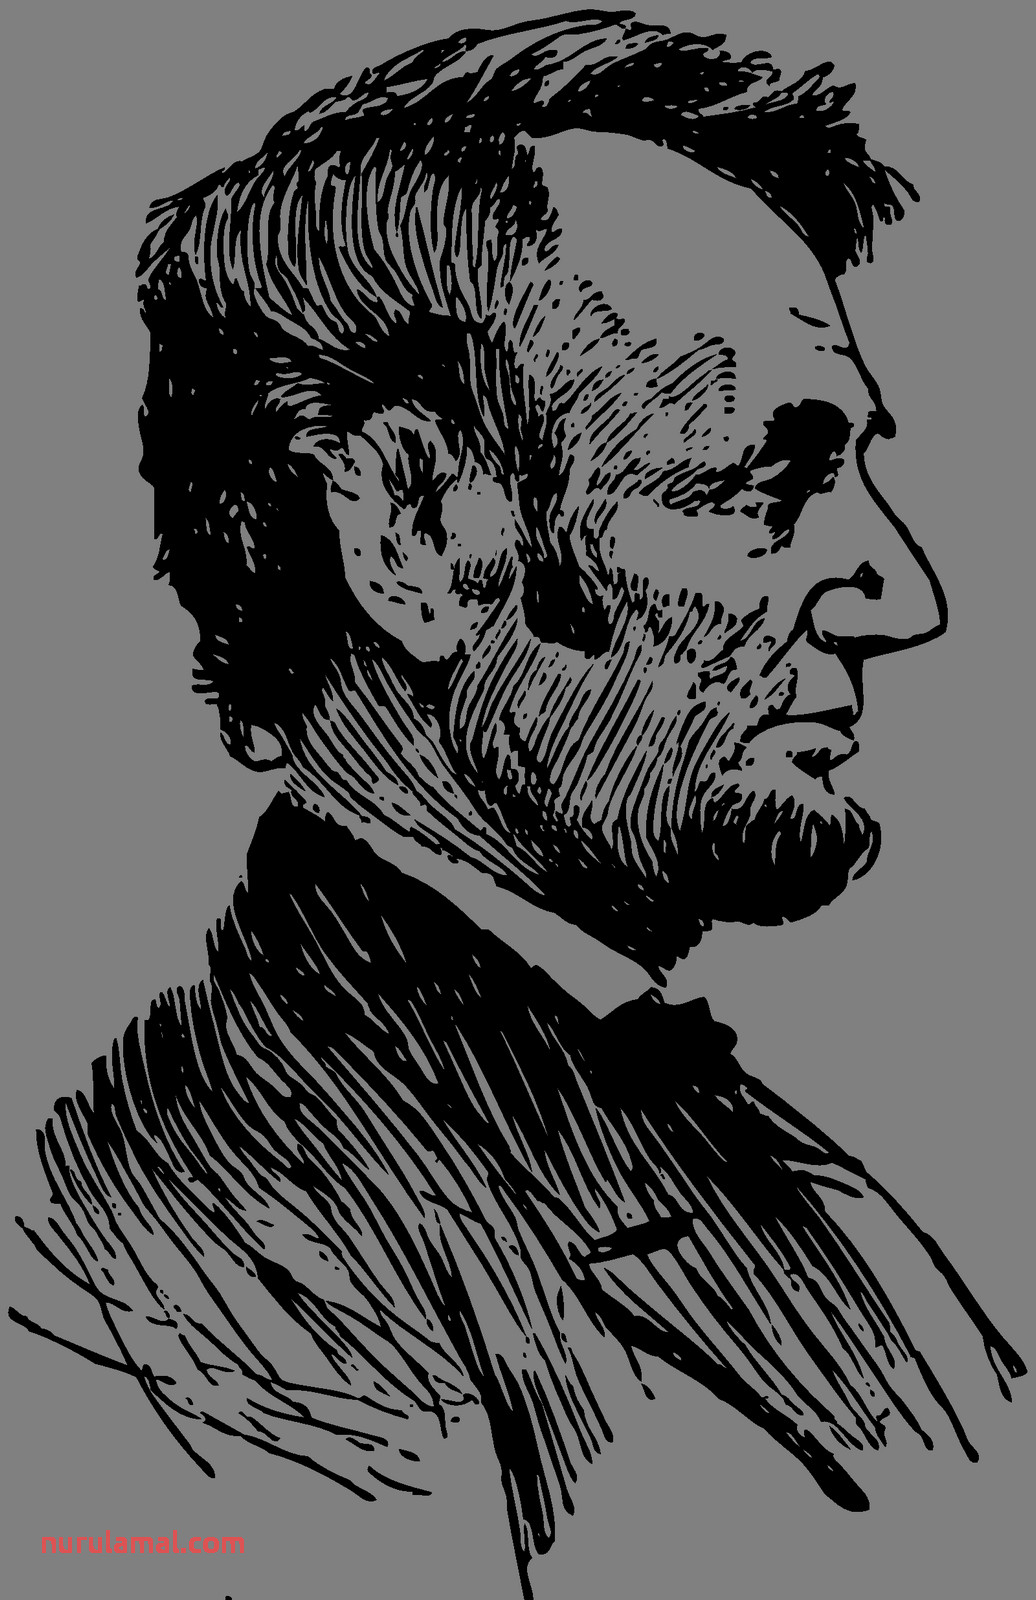 abe lincoln silhouette 4